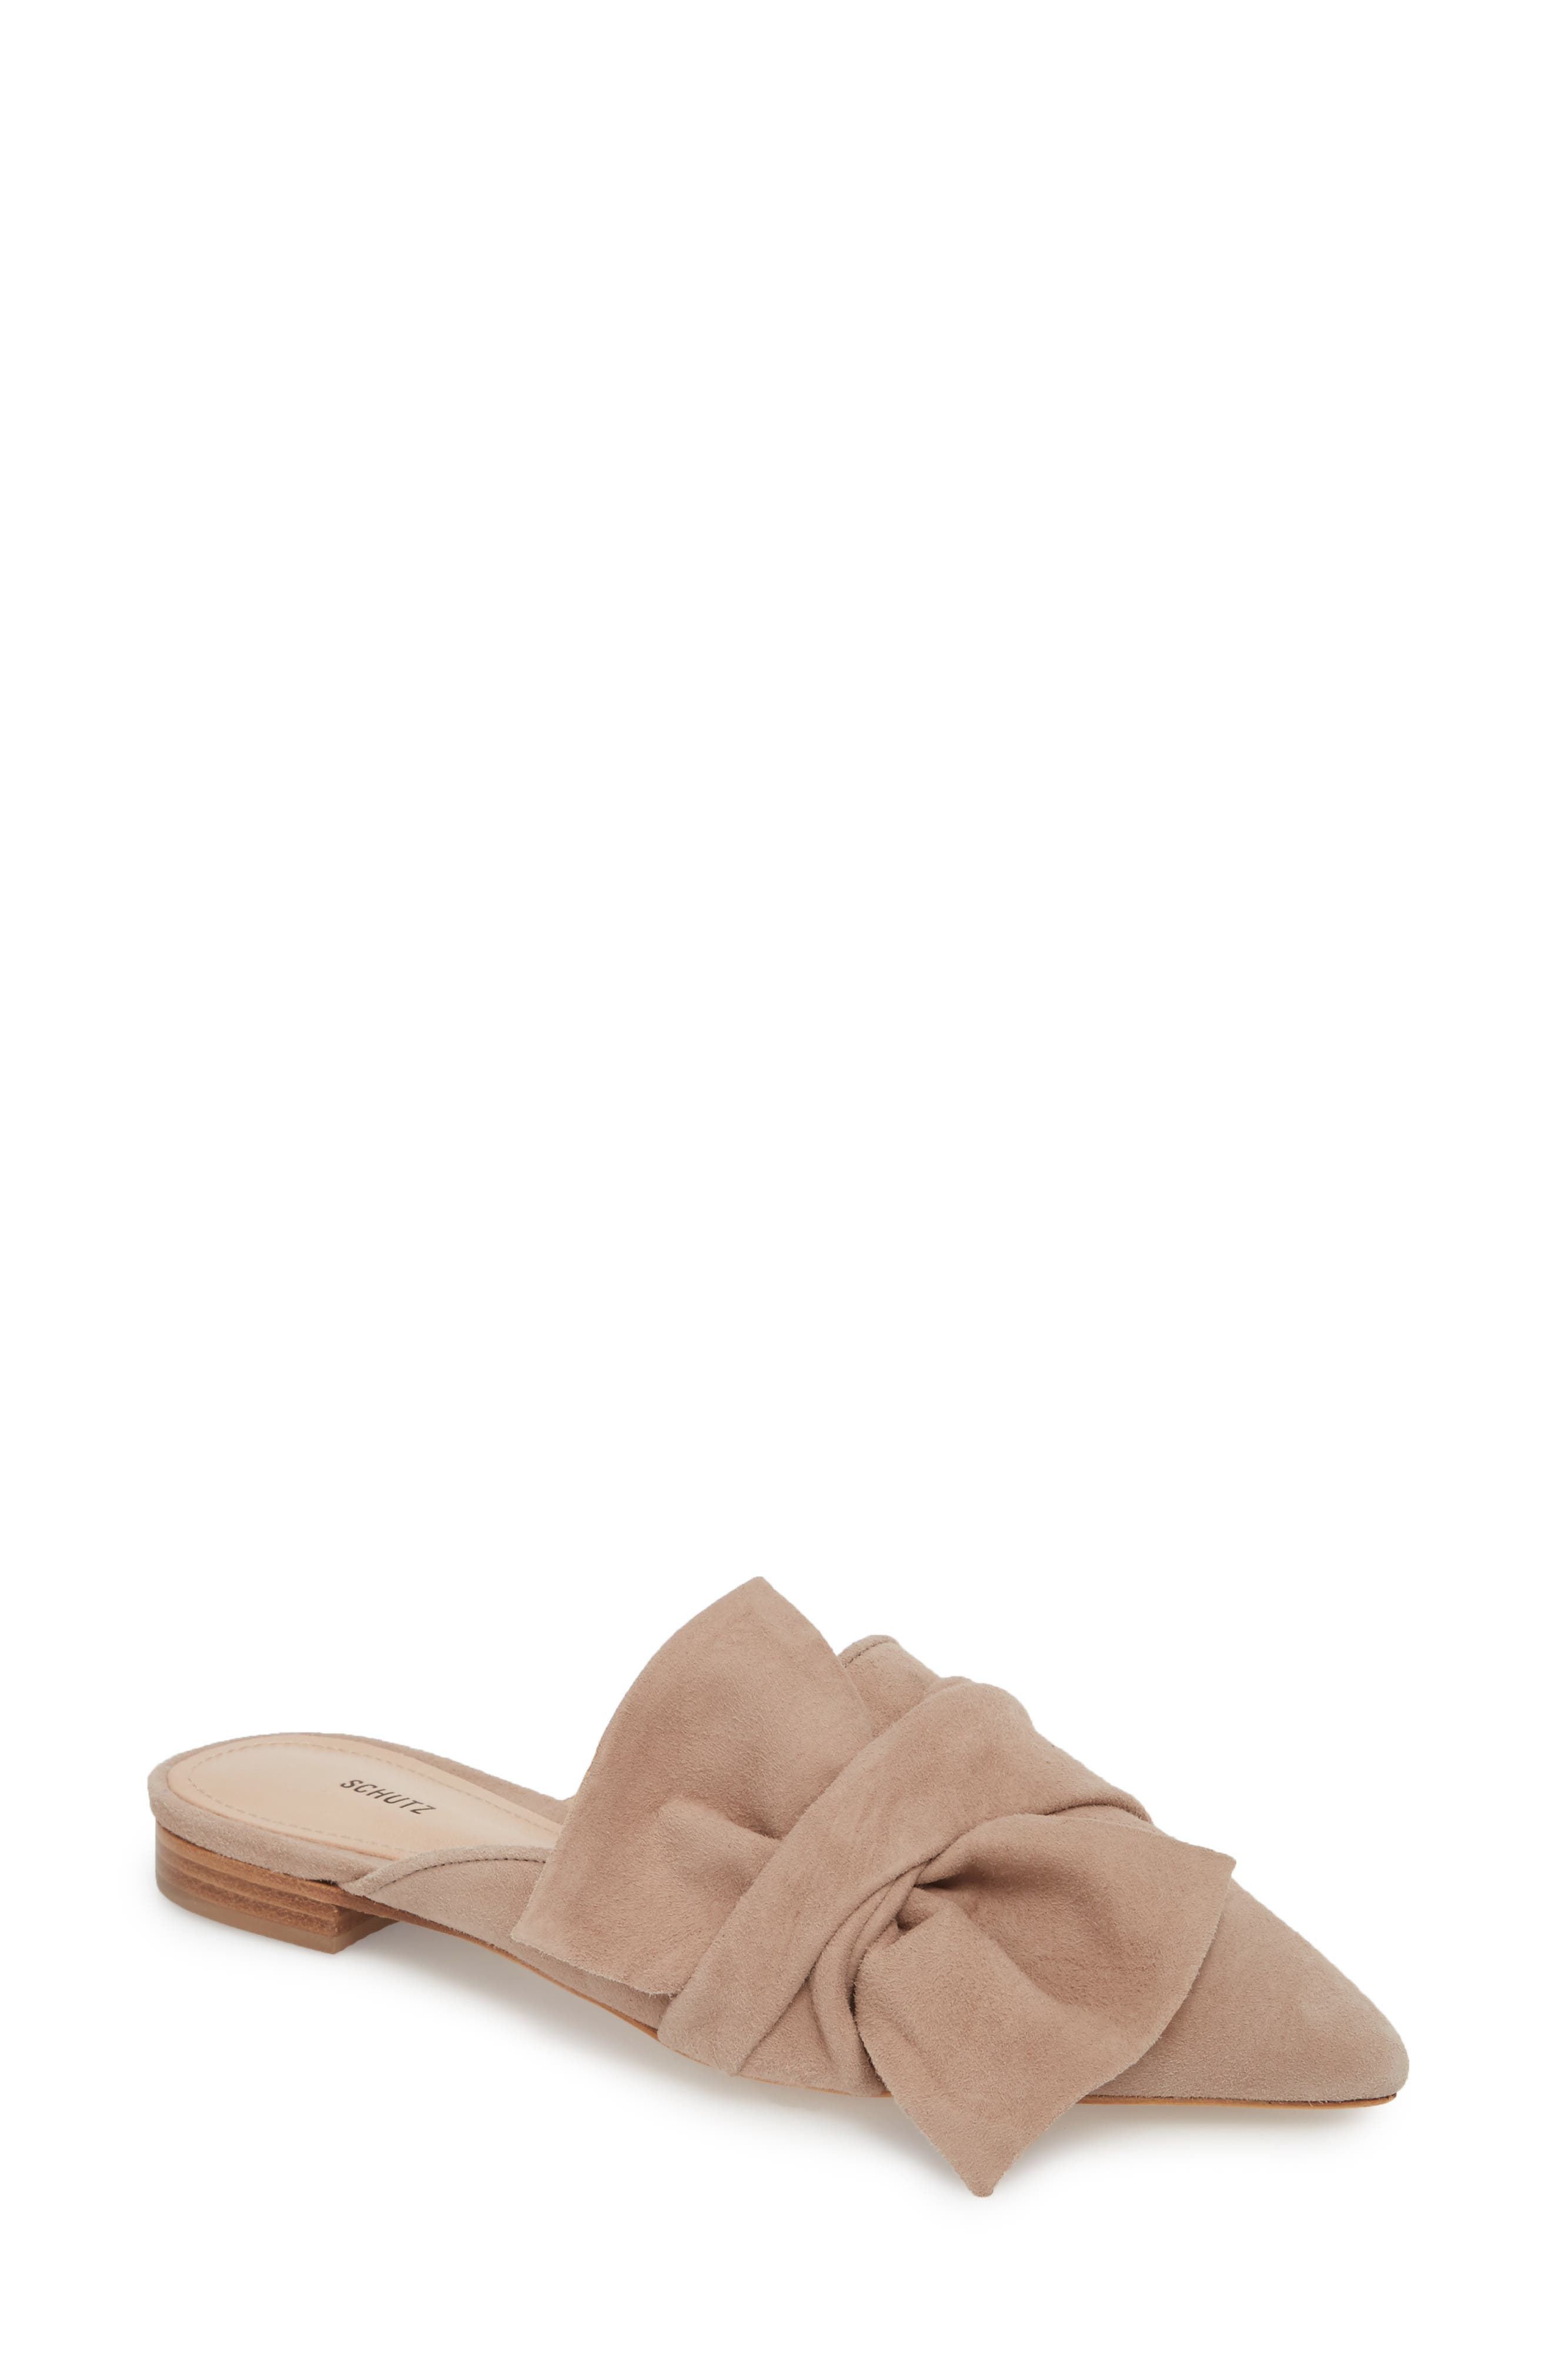 D'Ana Knotted Loafer Mule,                             Main thumbnail 1, color,                             NEUTRAL SUEDE